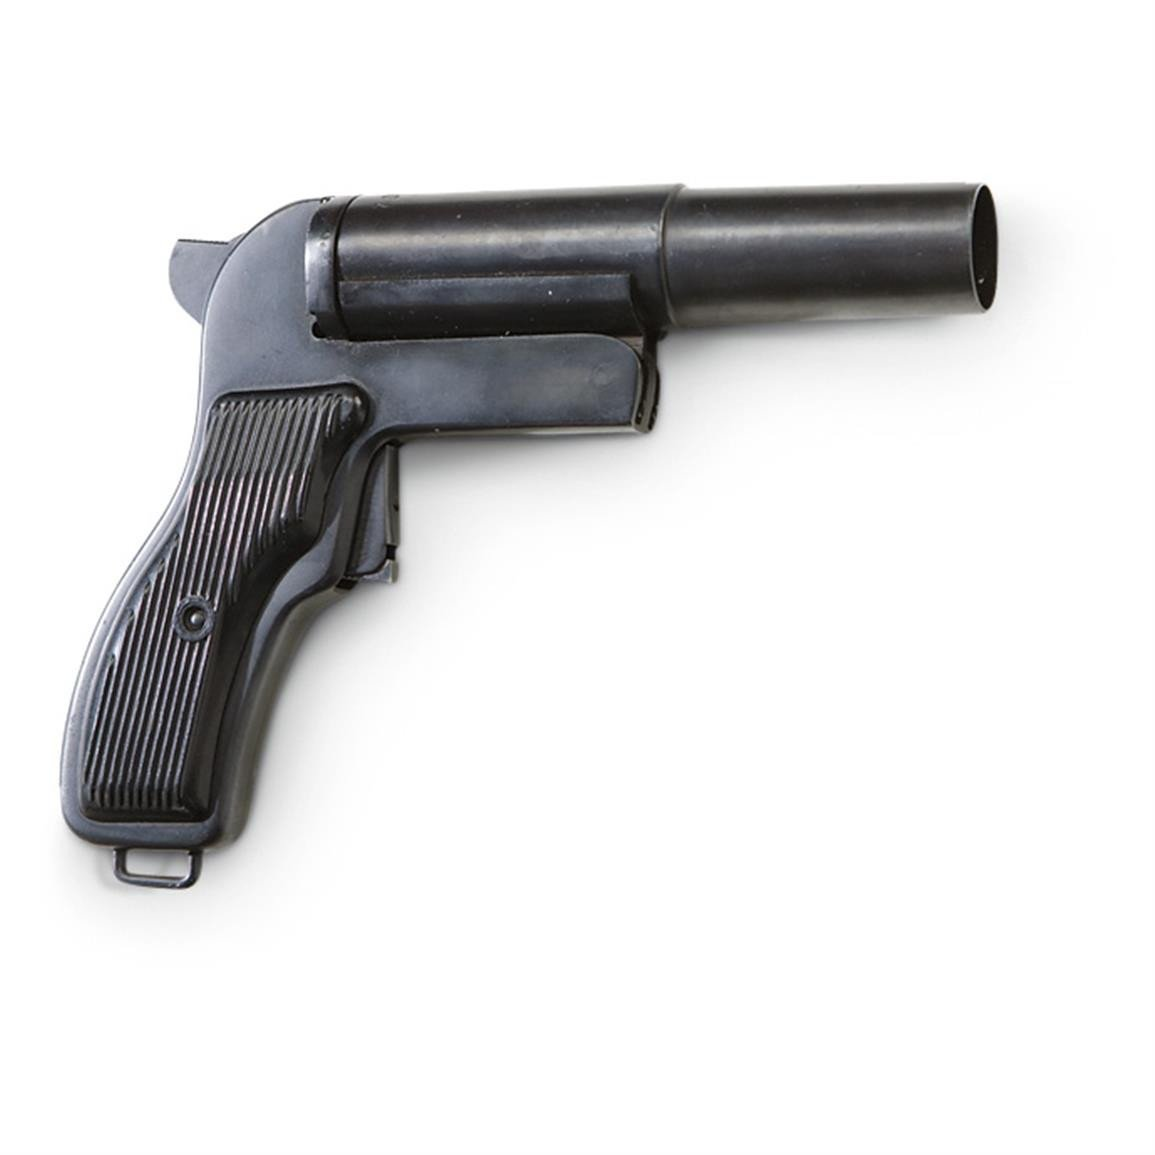 26.5mm Warsaw Pact Flare Pistol